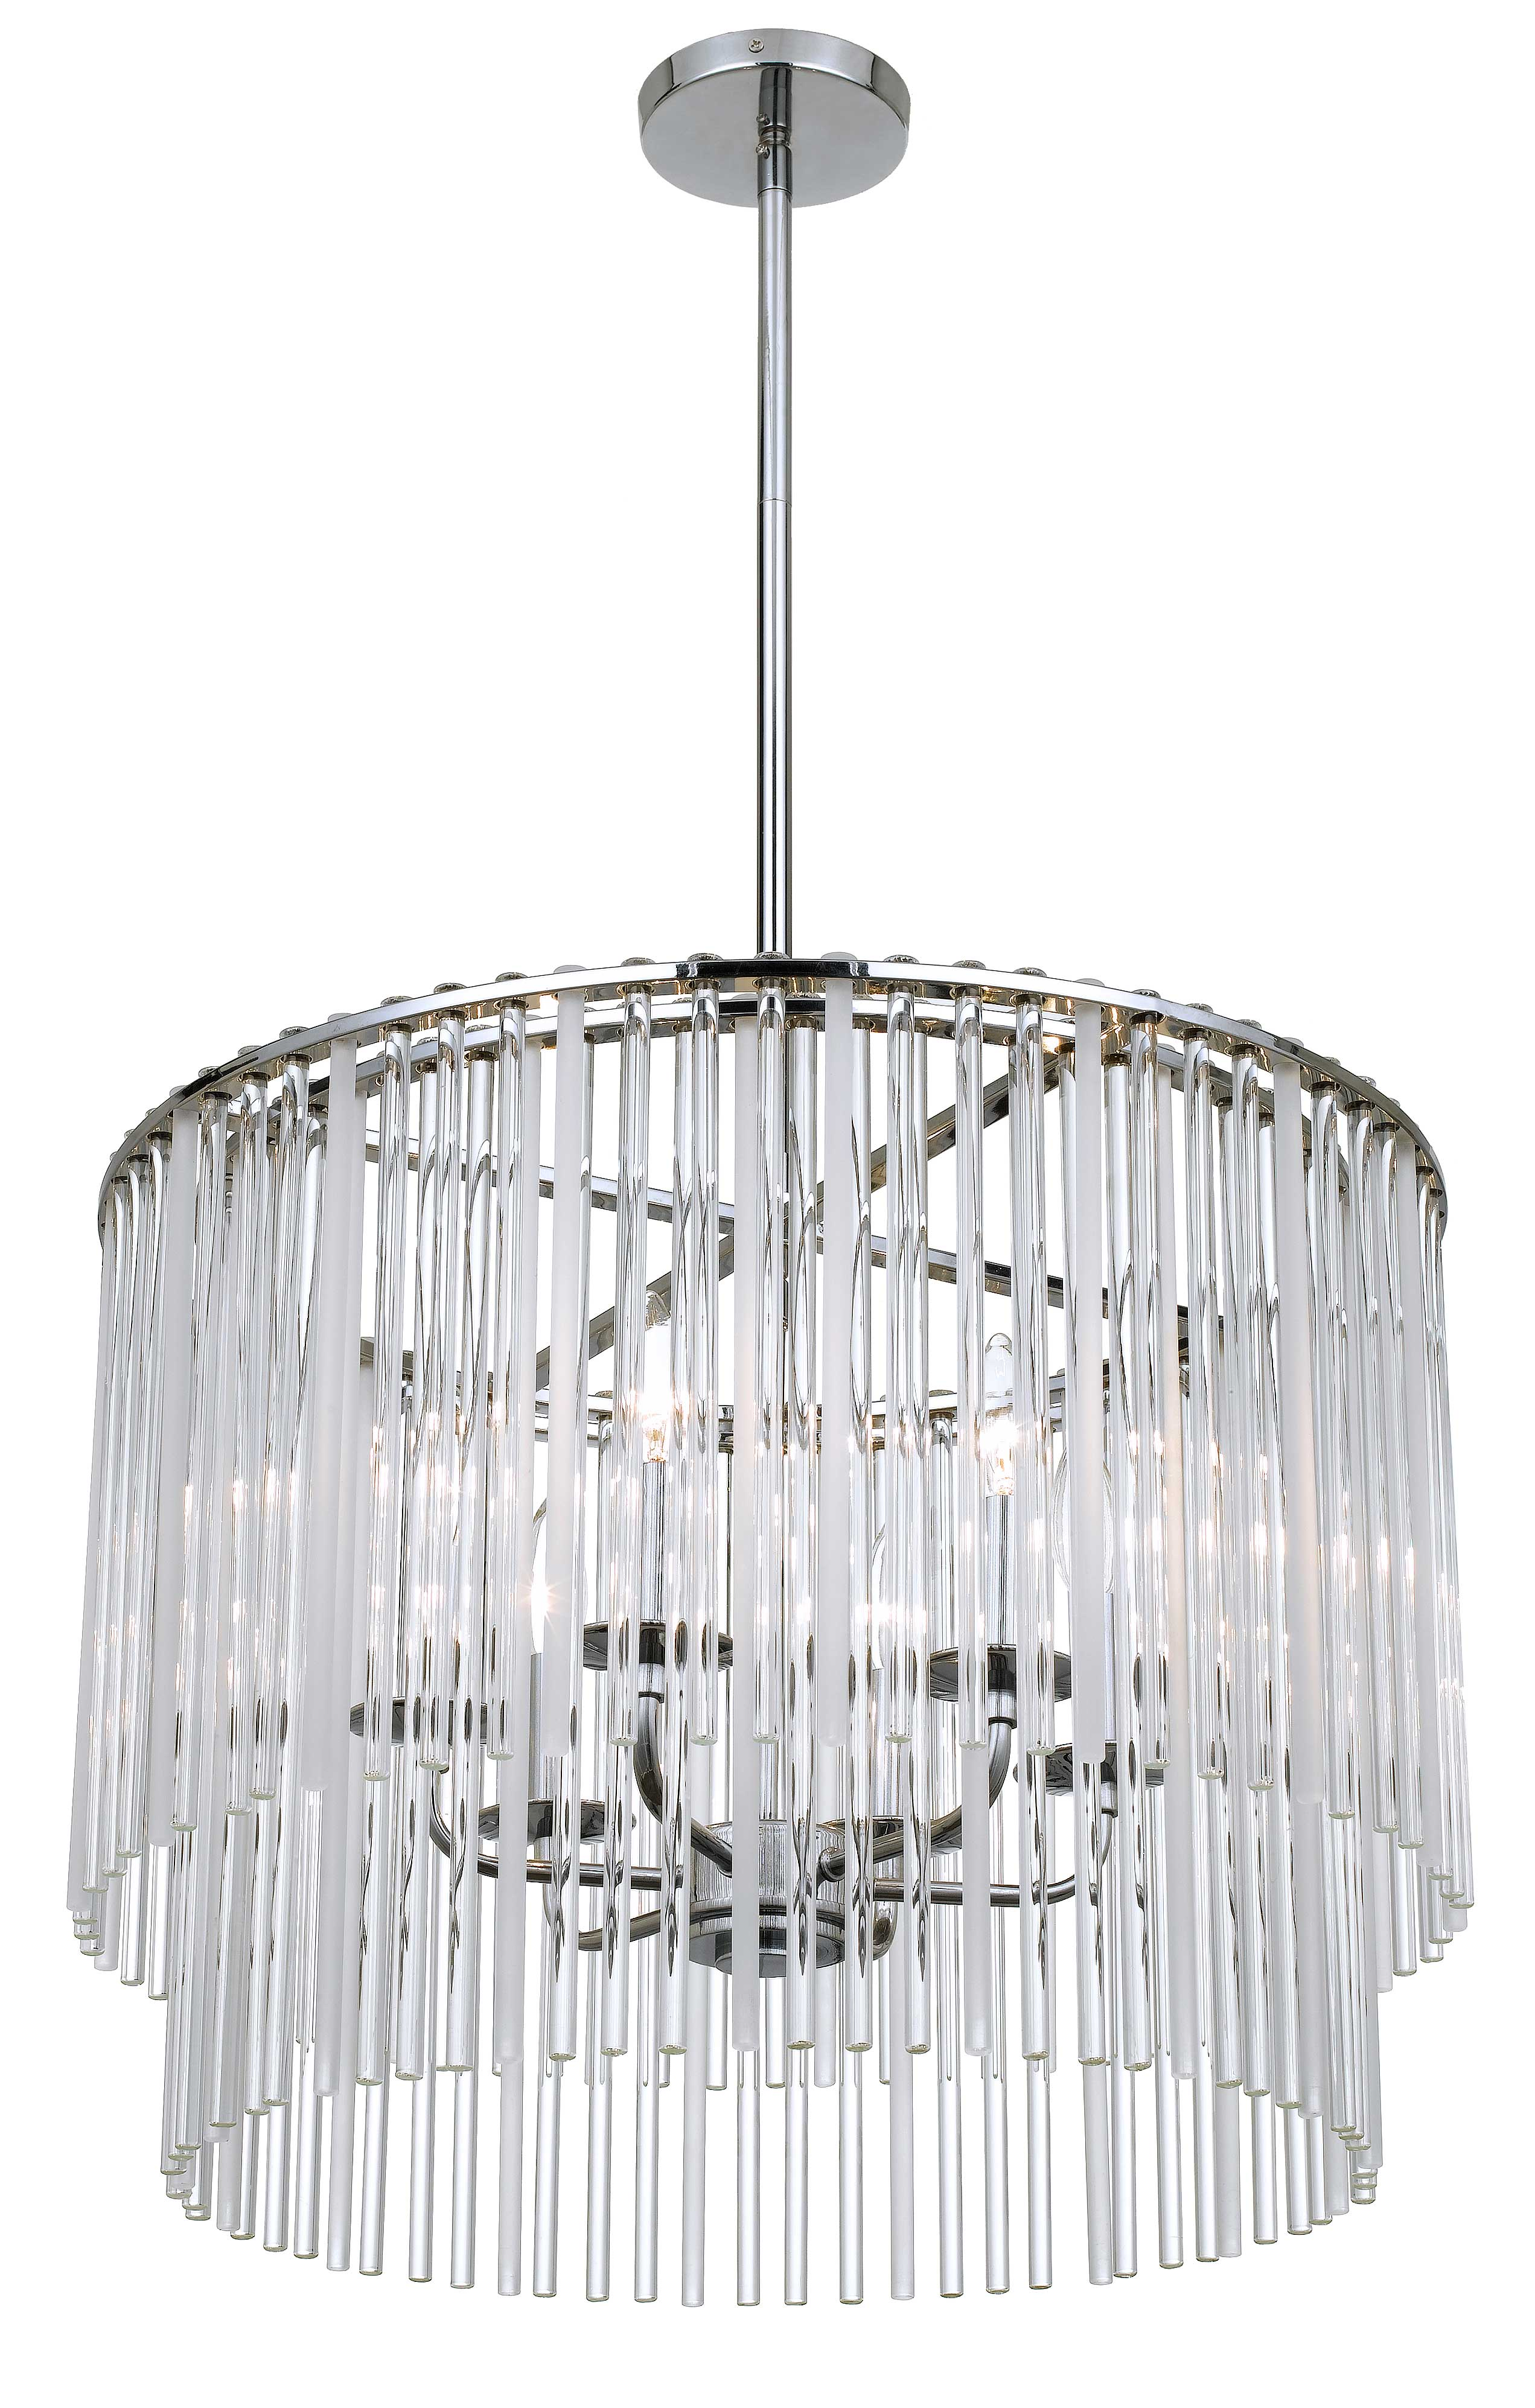 Charlottesville wine and country living blog home dcor these lighting fixtures like the crystomara bleeker chandelier below can be used to brighten your living room add a glow to your spa bath and illuminate arubaitofo Image collections